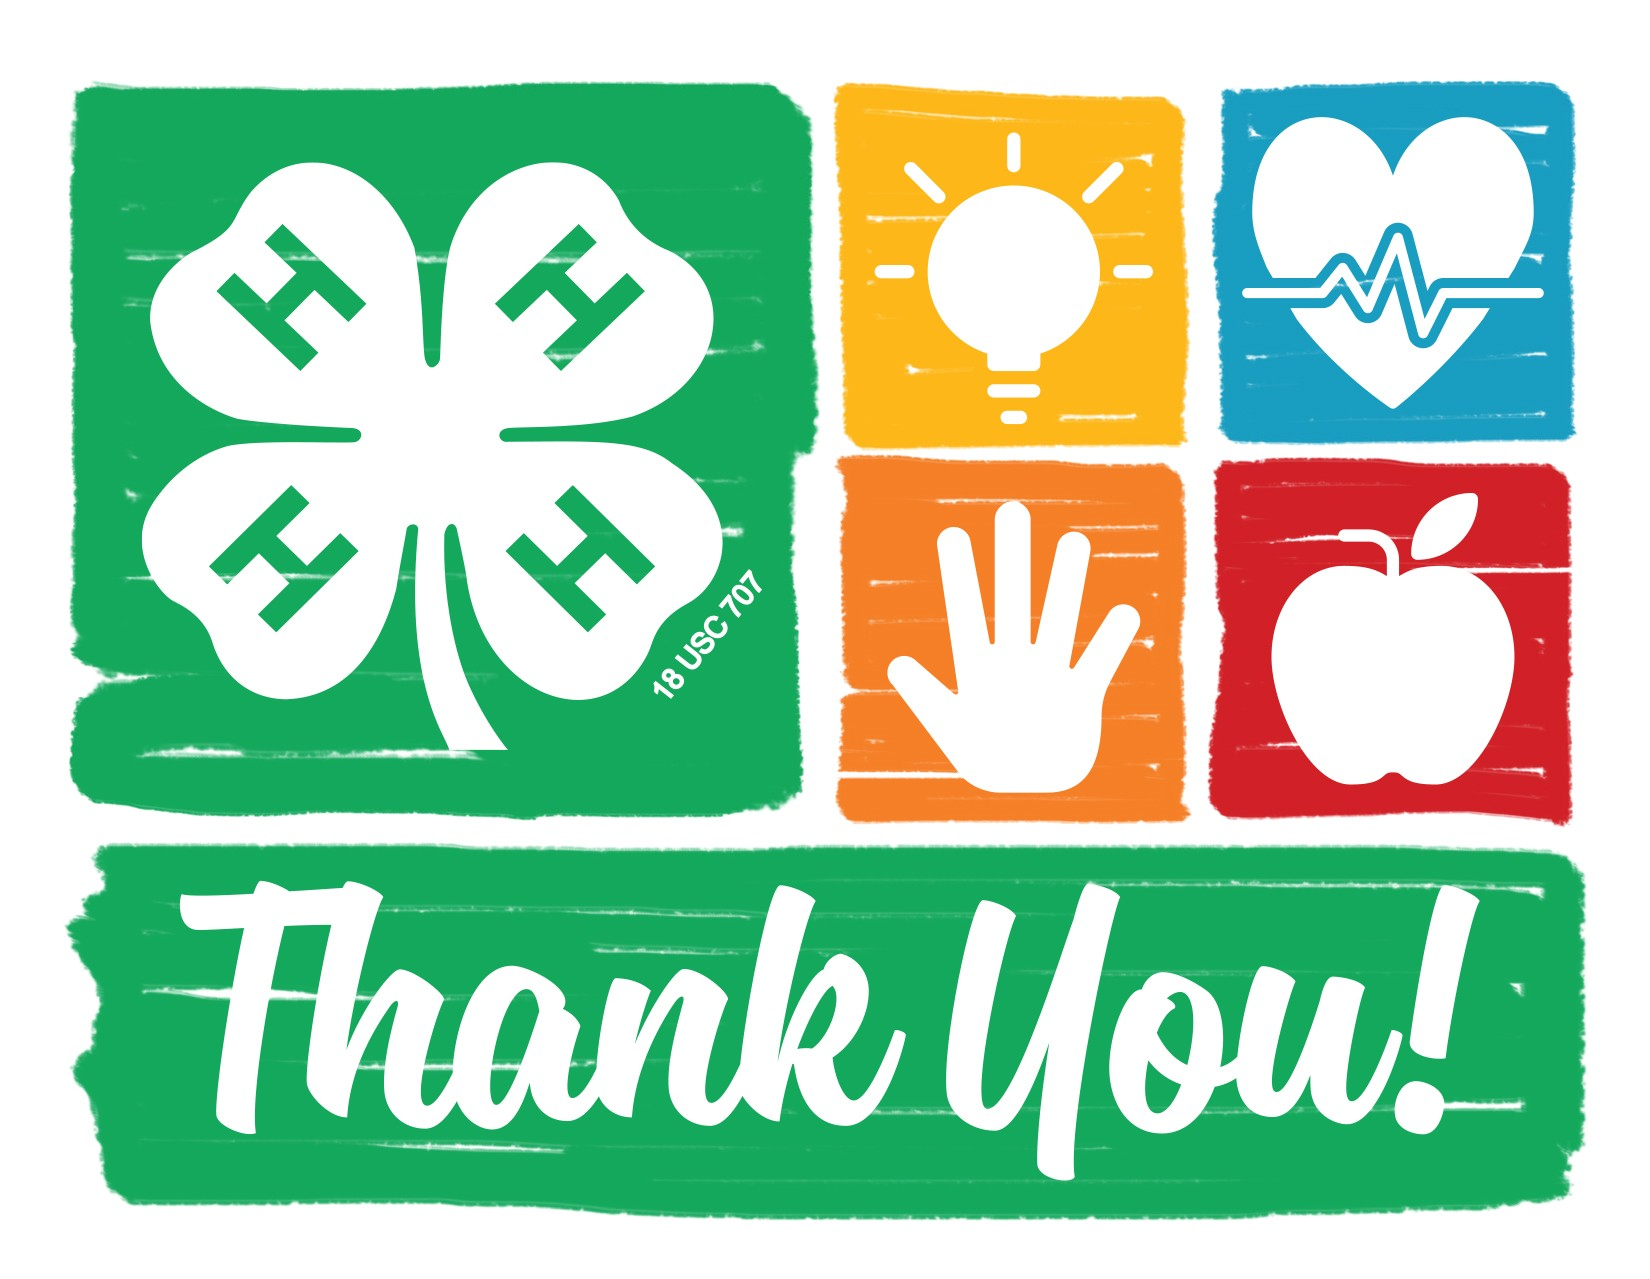 Nebraska 4-H Thank You Notecards